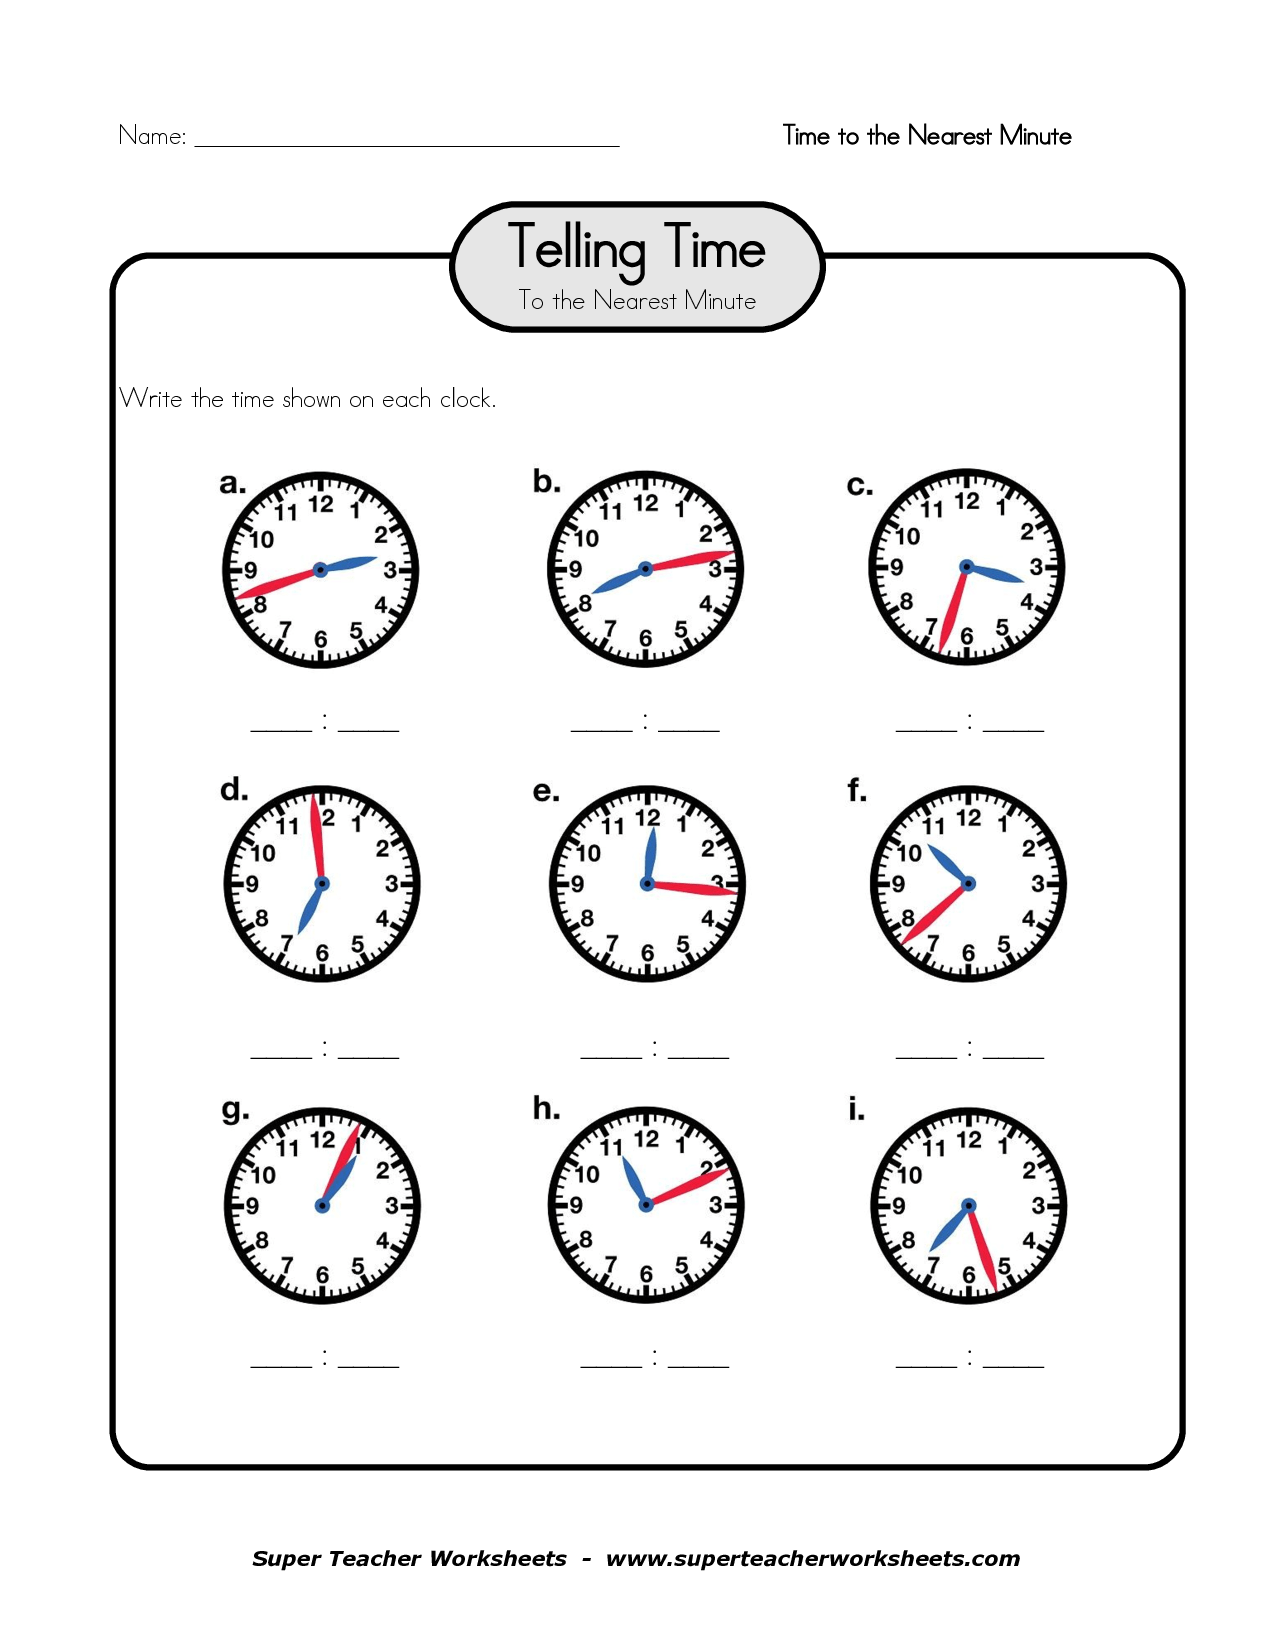 Clock Telling Time Worksheet Printable Printable Worksheets For Telling Time